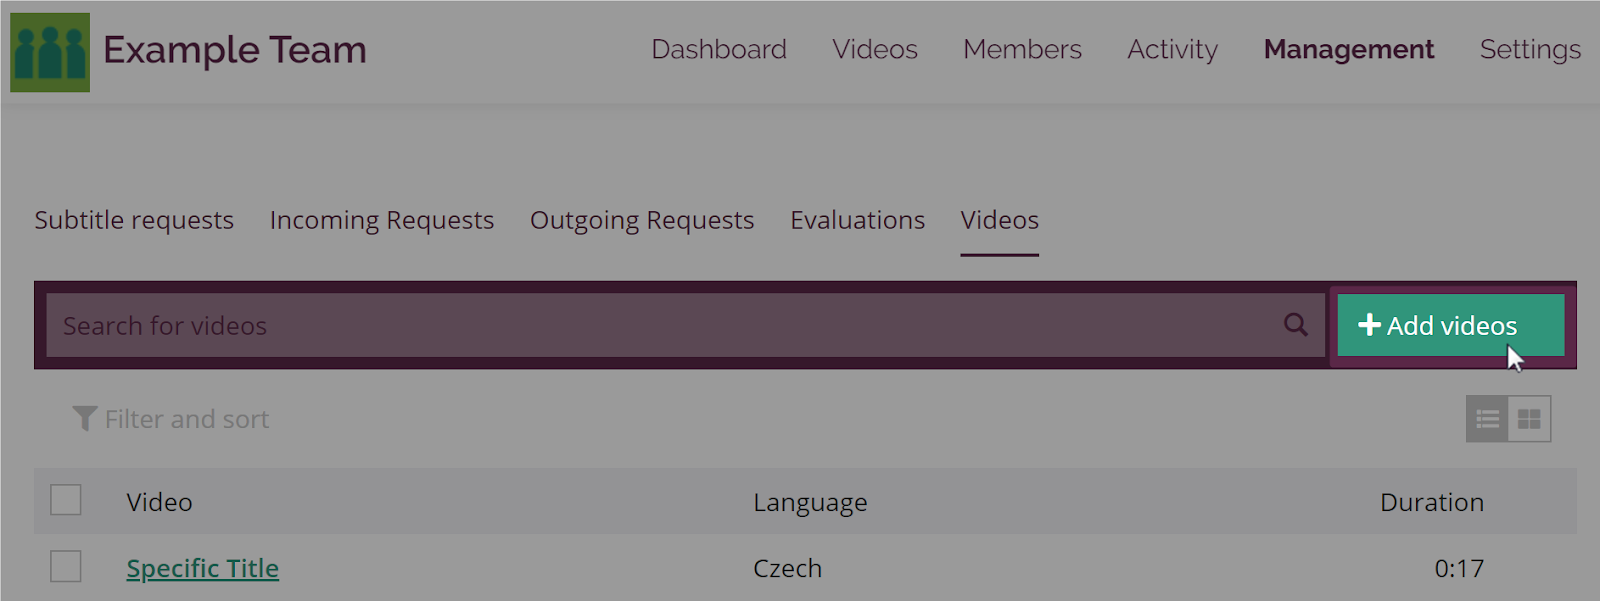 Management page on Collaboration team with Video tab open and Add video link highlighted